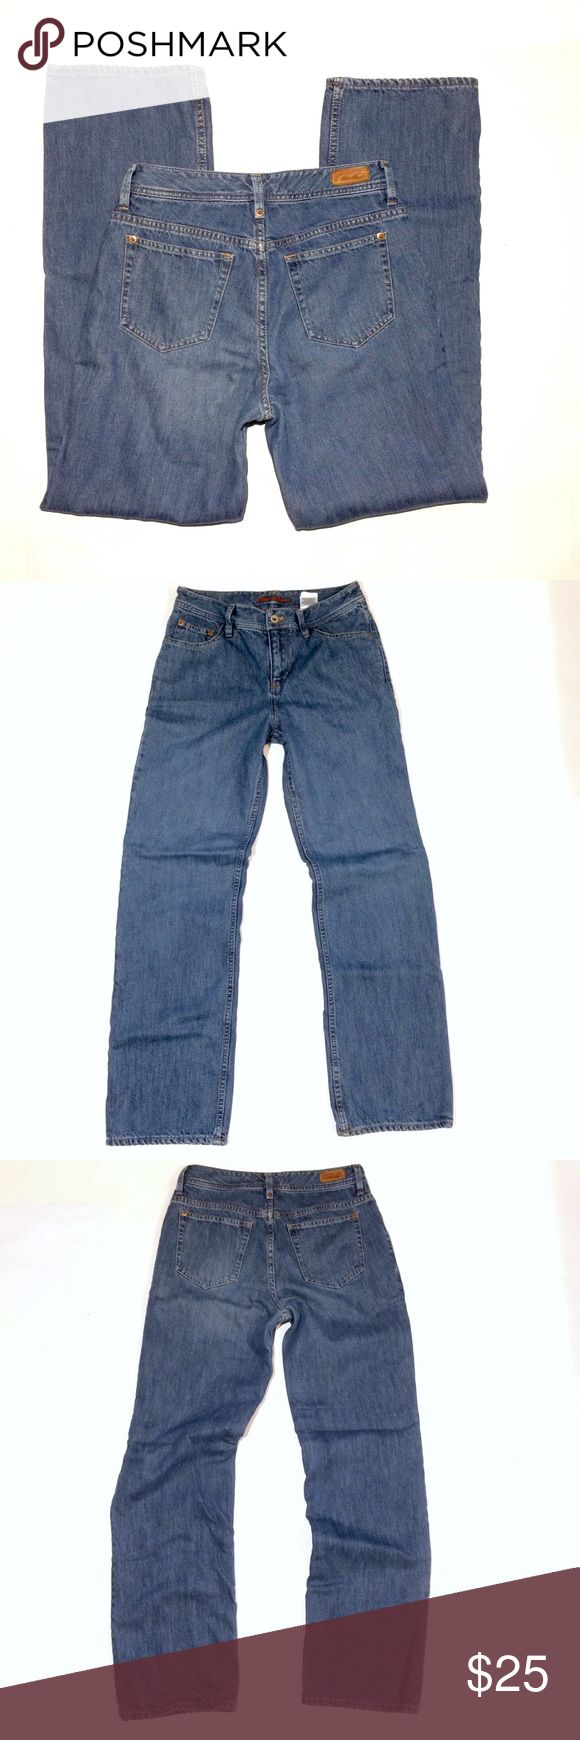 """Eddie Bauer flannel lined jeans size 4 Eddie Bauer natural fit flannel lined jeans. Ladies size 4. Excellent condition. No rips stains or tears. 100% cotton. Actual measurements are:   Waist 30"""" Inseam 31"""" Rise 9""""  Thanks Eddie Bauer Jeans Straight Leg"""